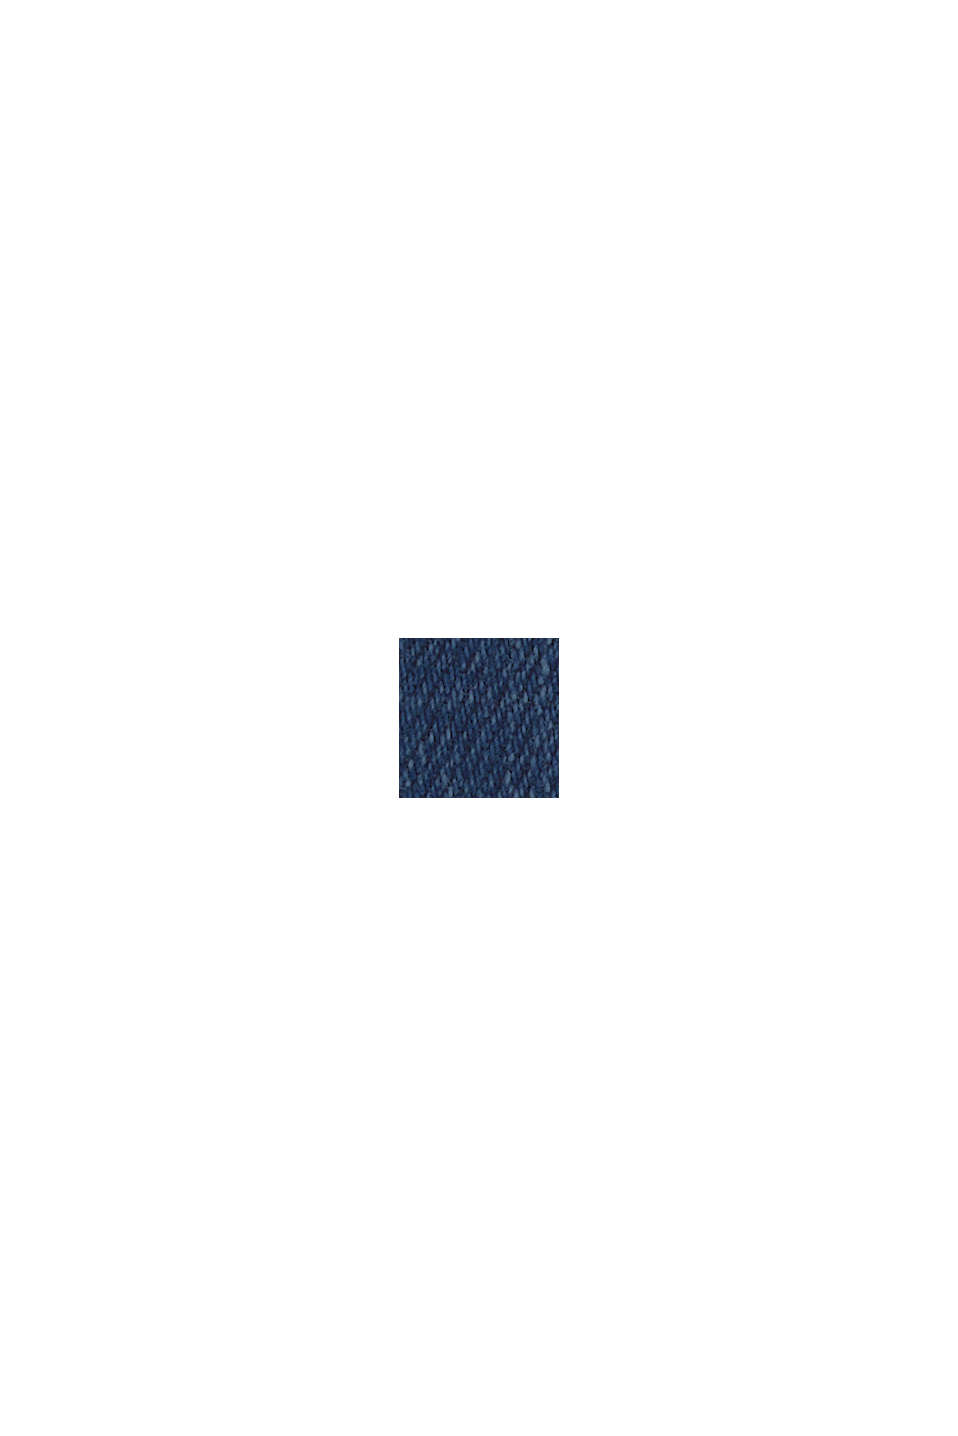 Stretchjeans met band over de buik, BLUE MEDIUM WASHED, swatch